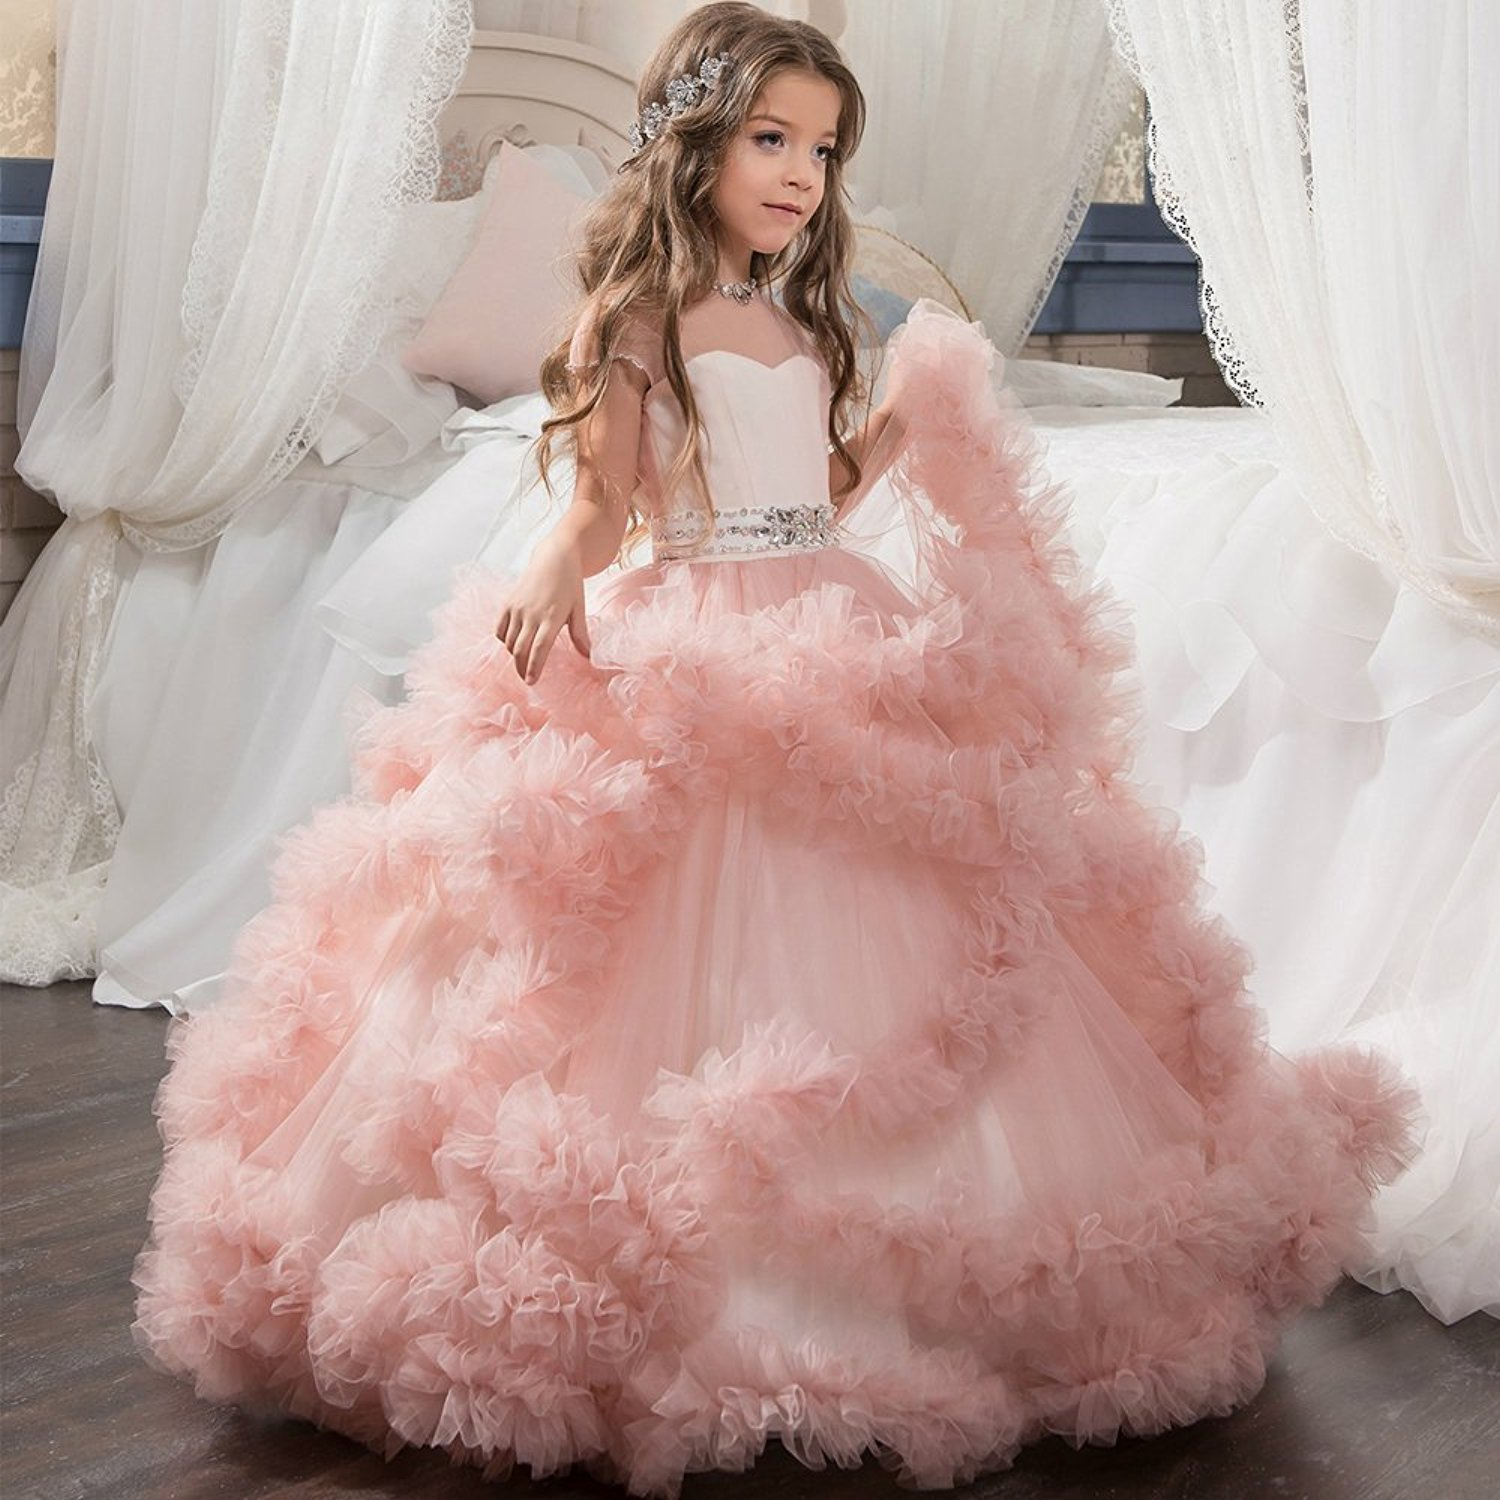 girls dress 10 to 12 years wedding teenager clothes kids party Dresses pink long dress elegant prom evening dresses for girl цена